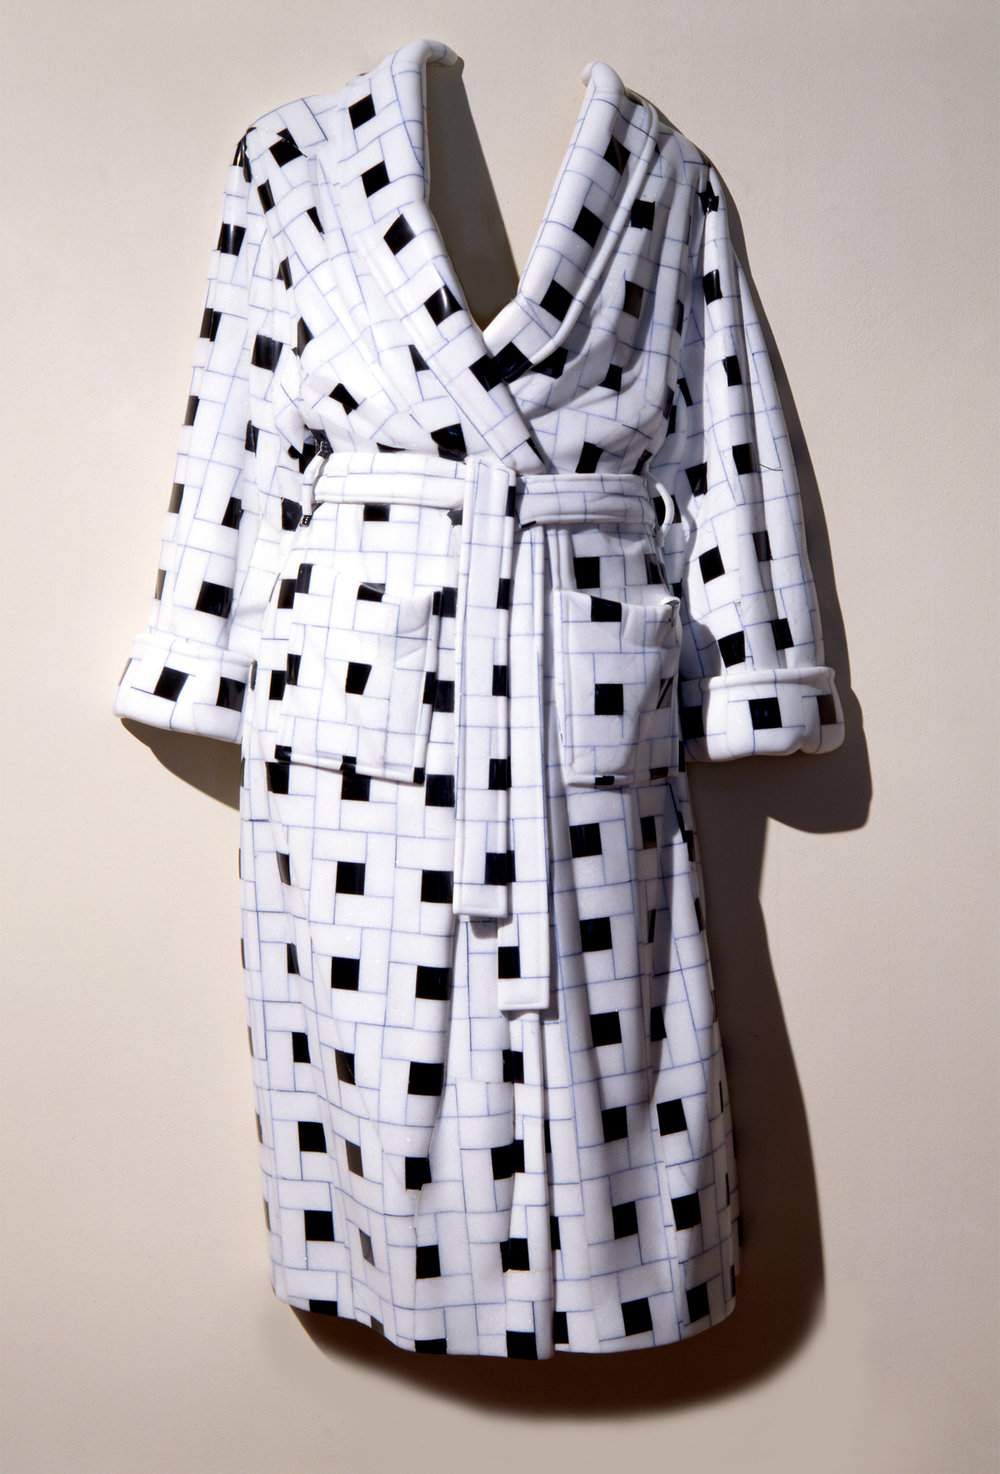 Bathrobes & Aprons  Interlocking patterns, intricate plaids and intarsia designs suggest power struggles both intimate and observed.